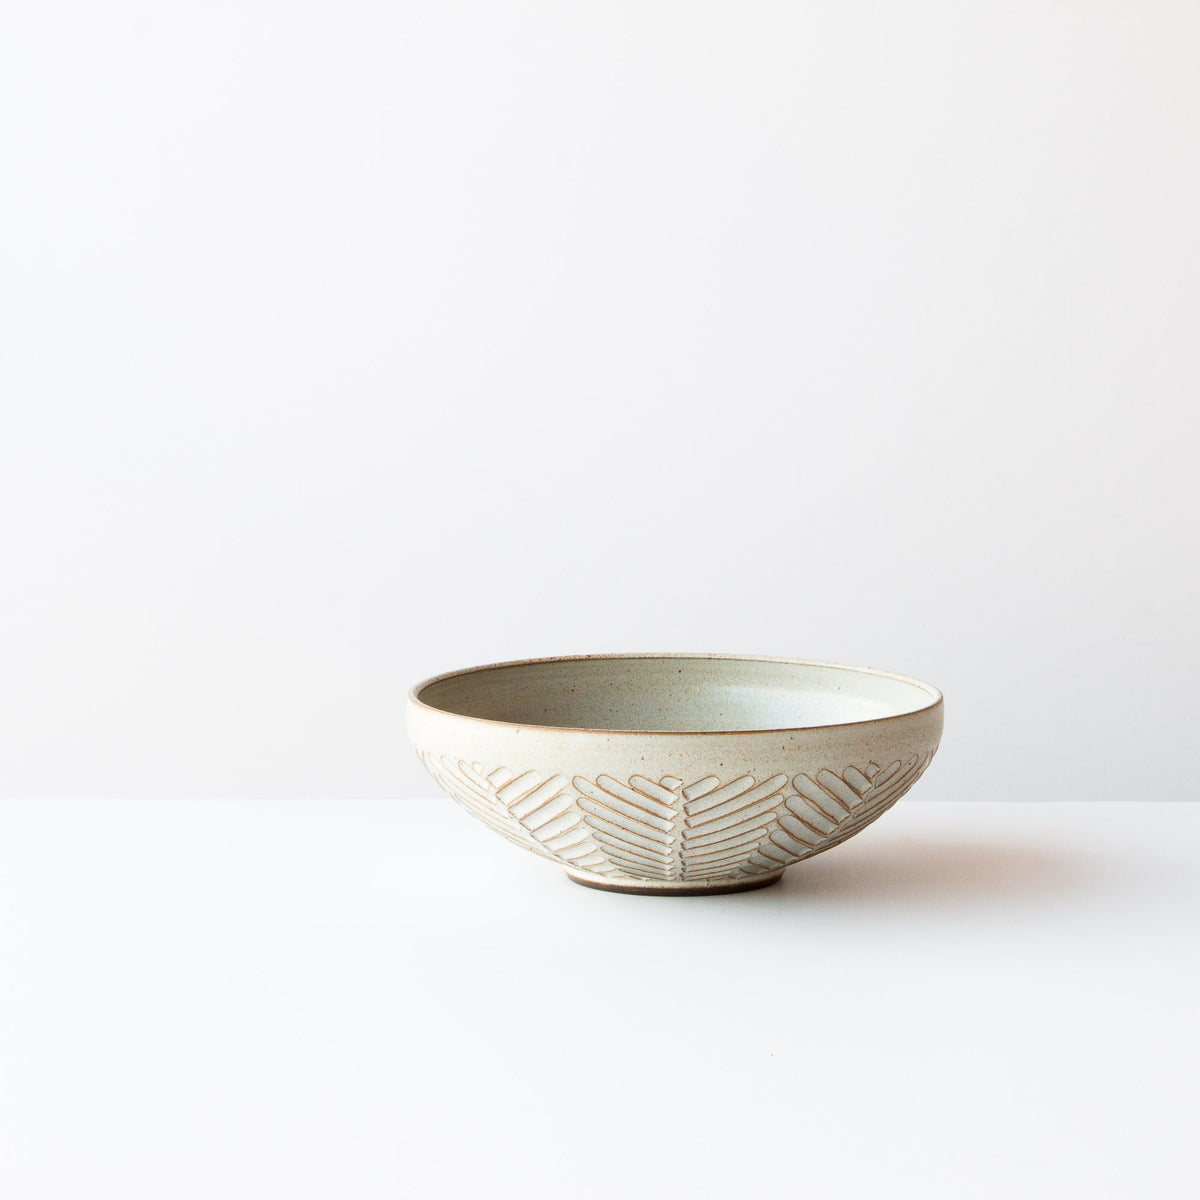 Greige Colour - Handmade Herringbone Pattern Ceramic Bowl - Handmade in Canada By Christian Roy - Chic & Basta